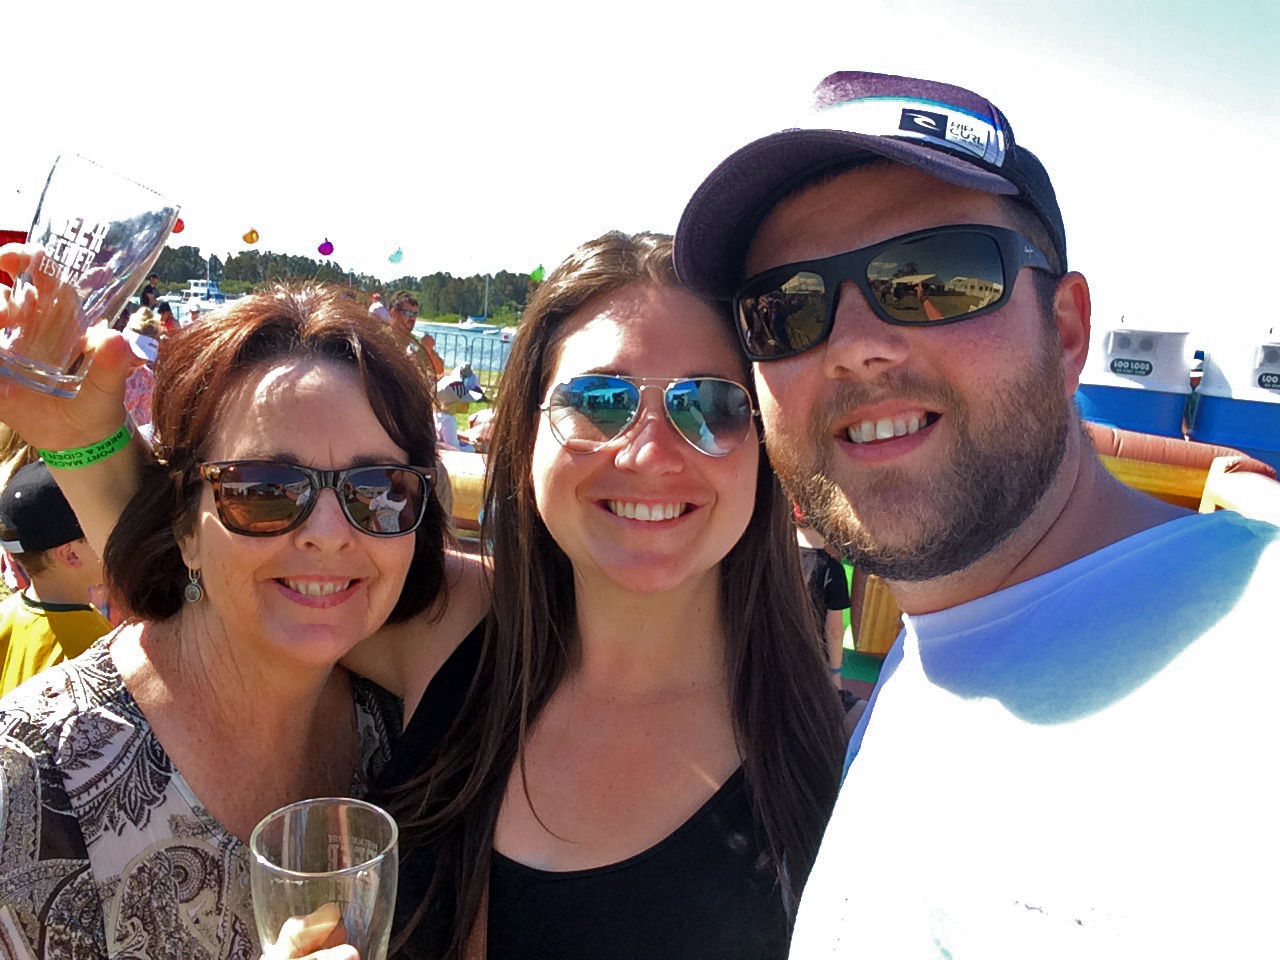 Port Macquarie Beer and Cider Festival Fun